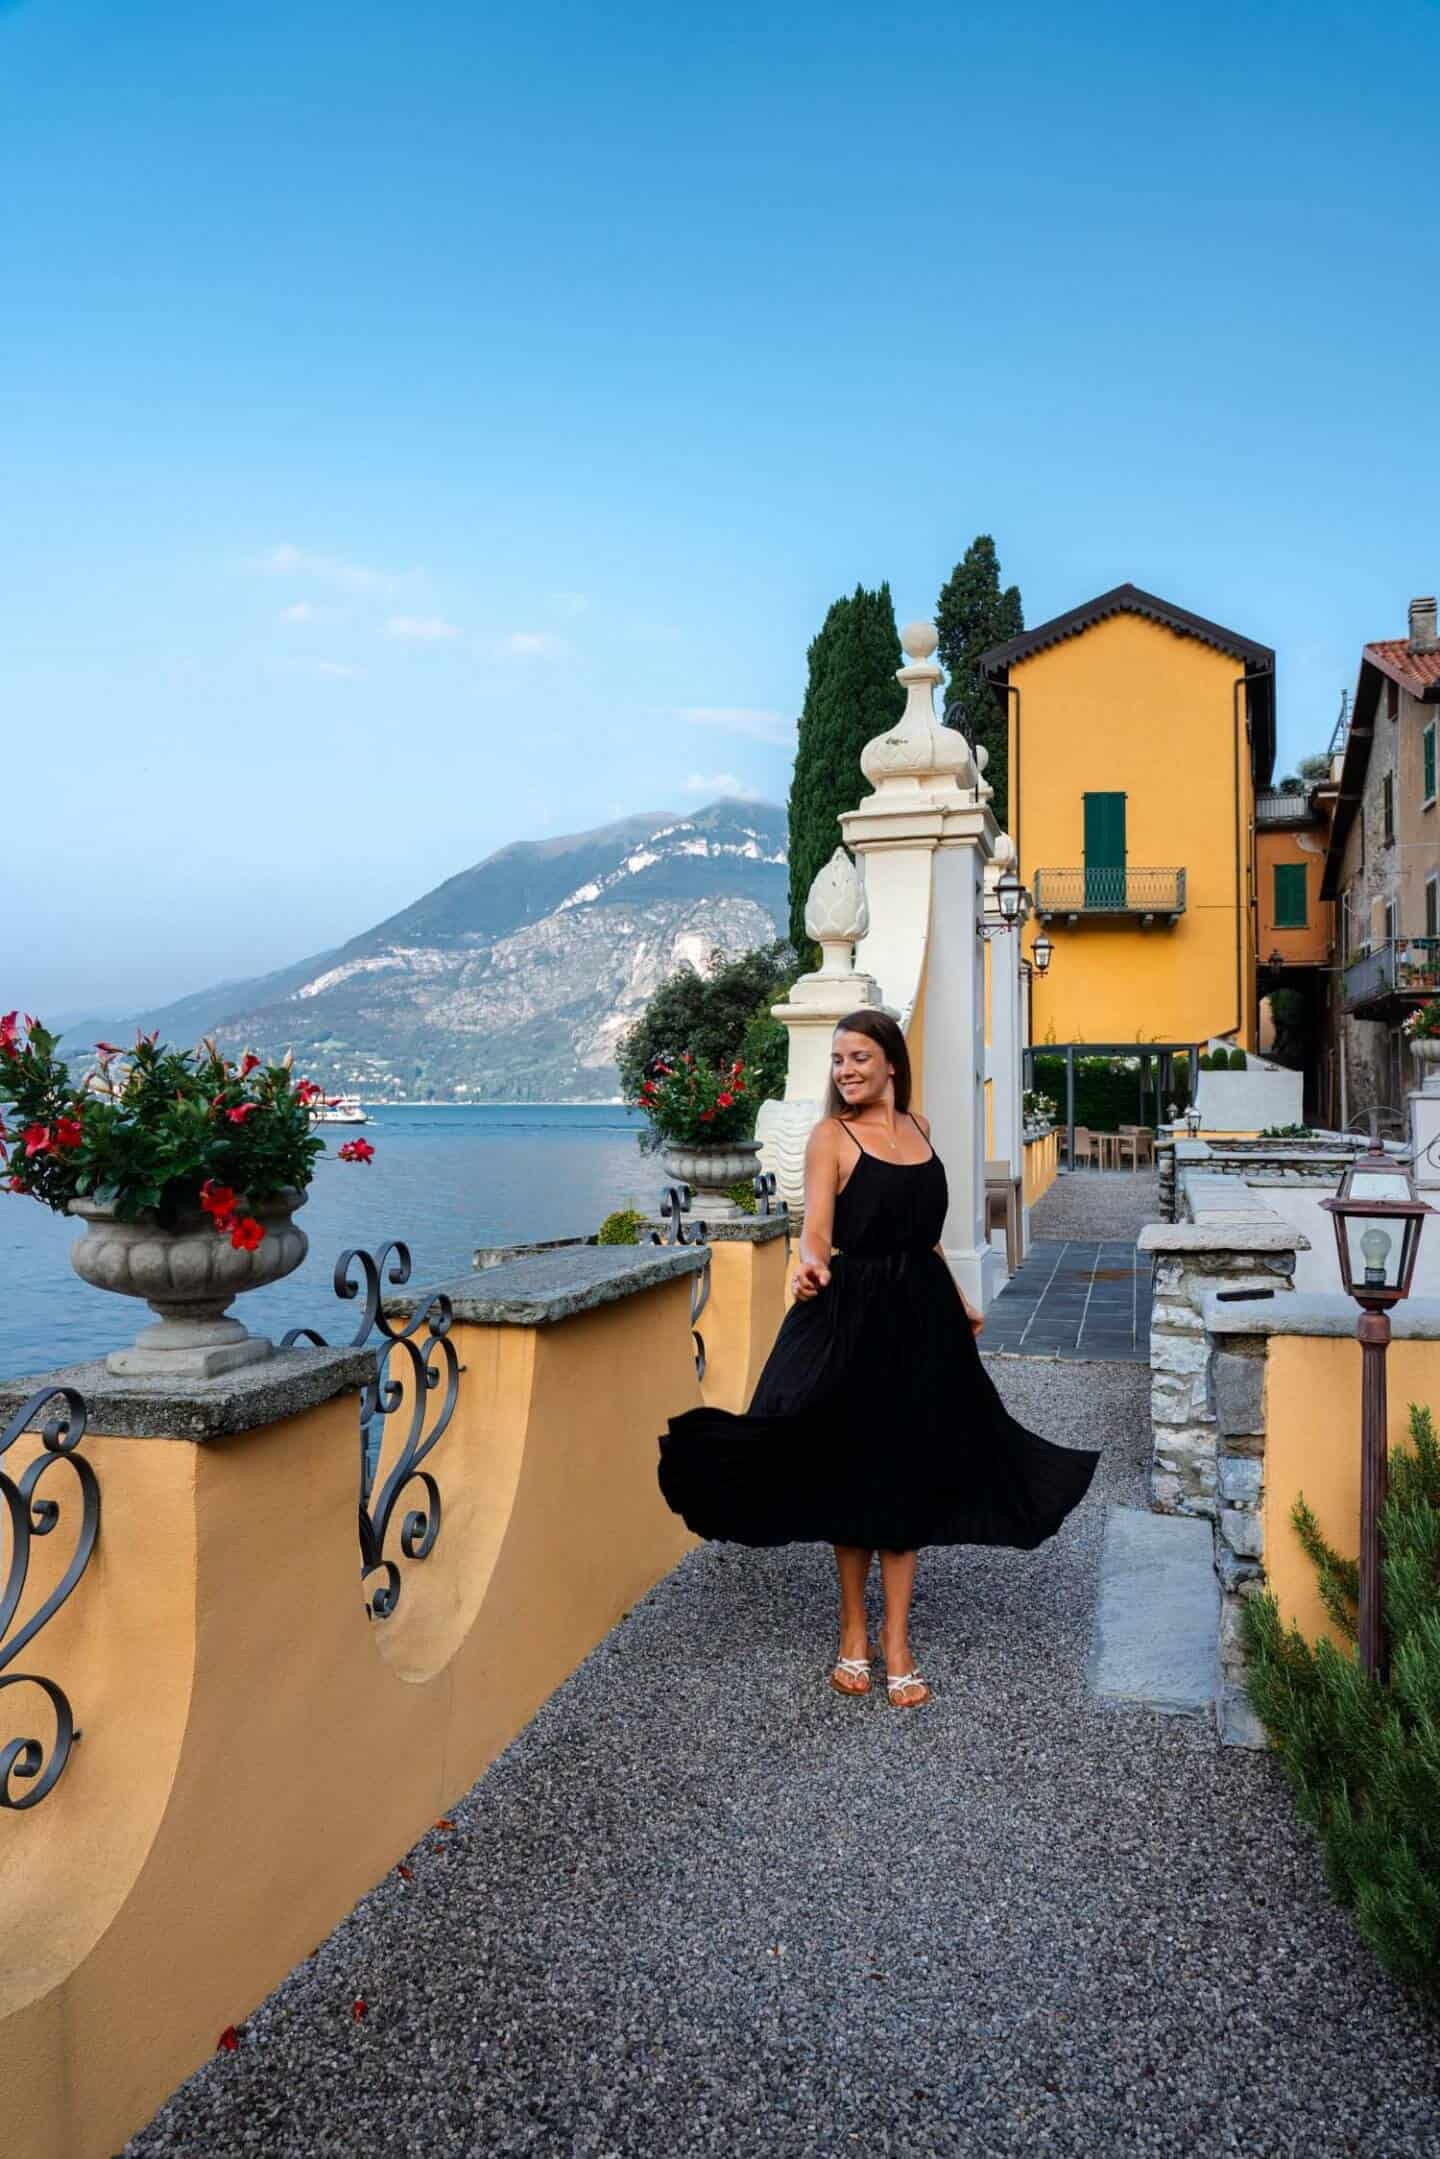 Girl twirling in  surrounded by a yellow building front of Lake Como on a Day trip from Milan